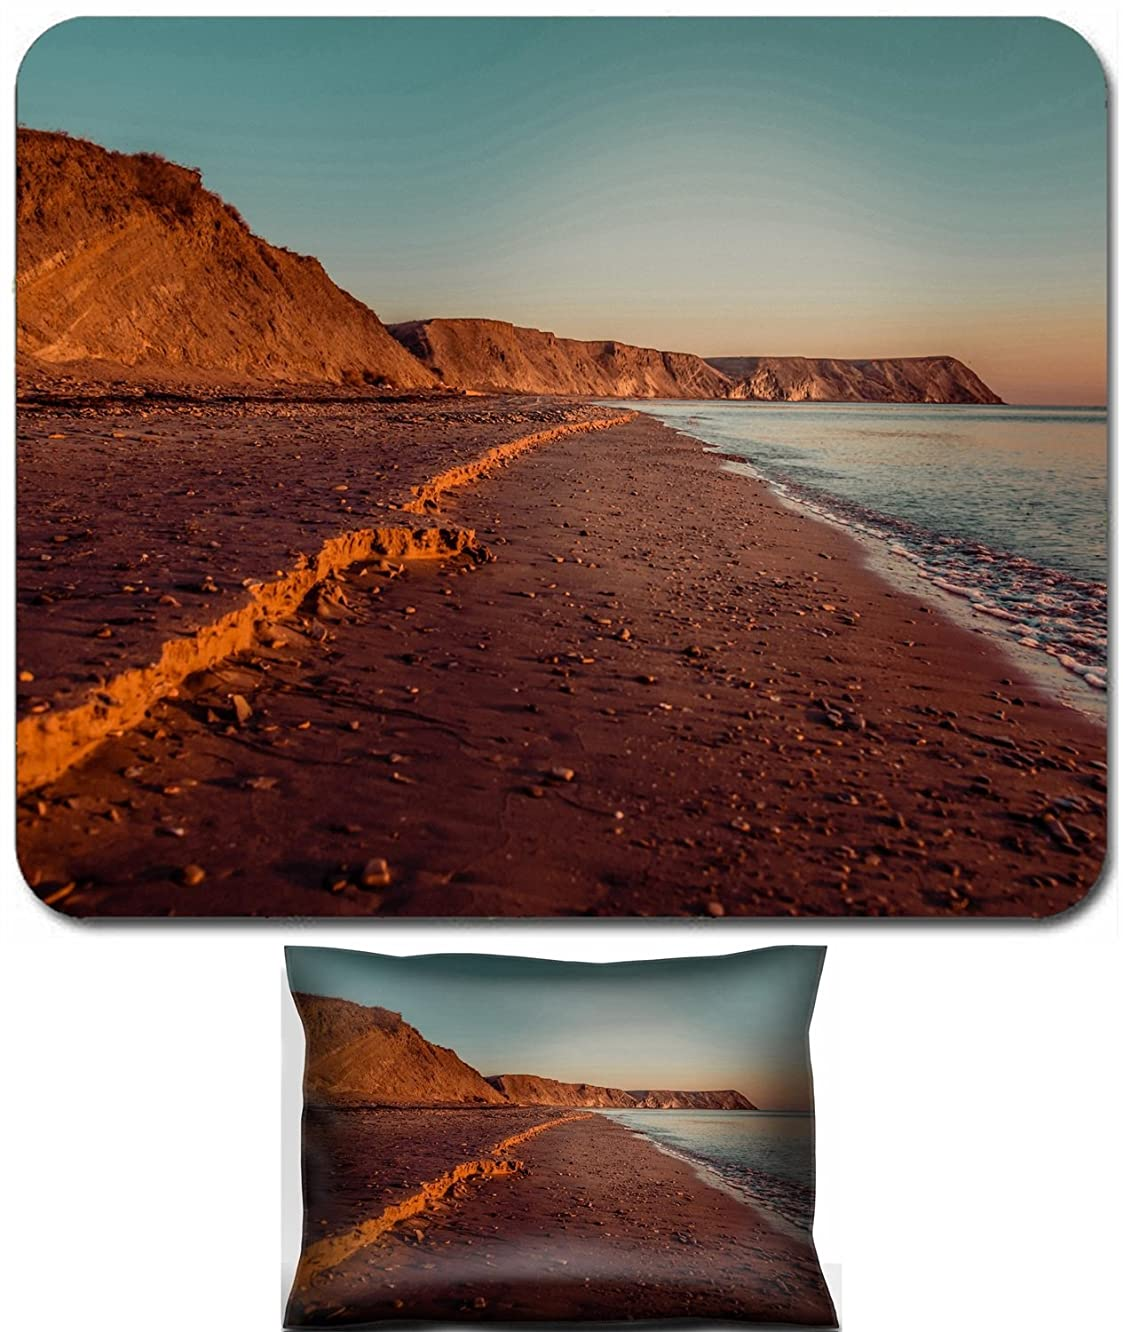 Luxlady Mouse Wrist Rest and Small Mousepad Set, 2pc Wrist Support design IMAGE: 34014935 Beach at sunset